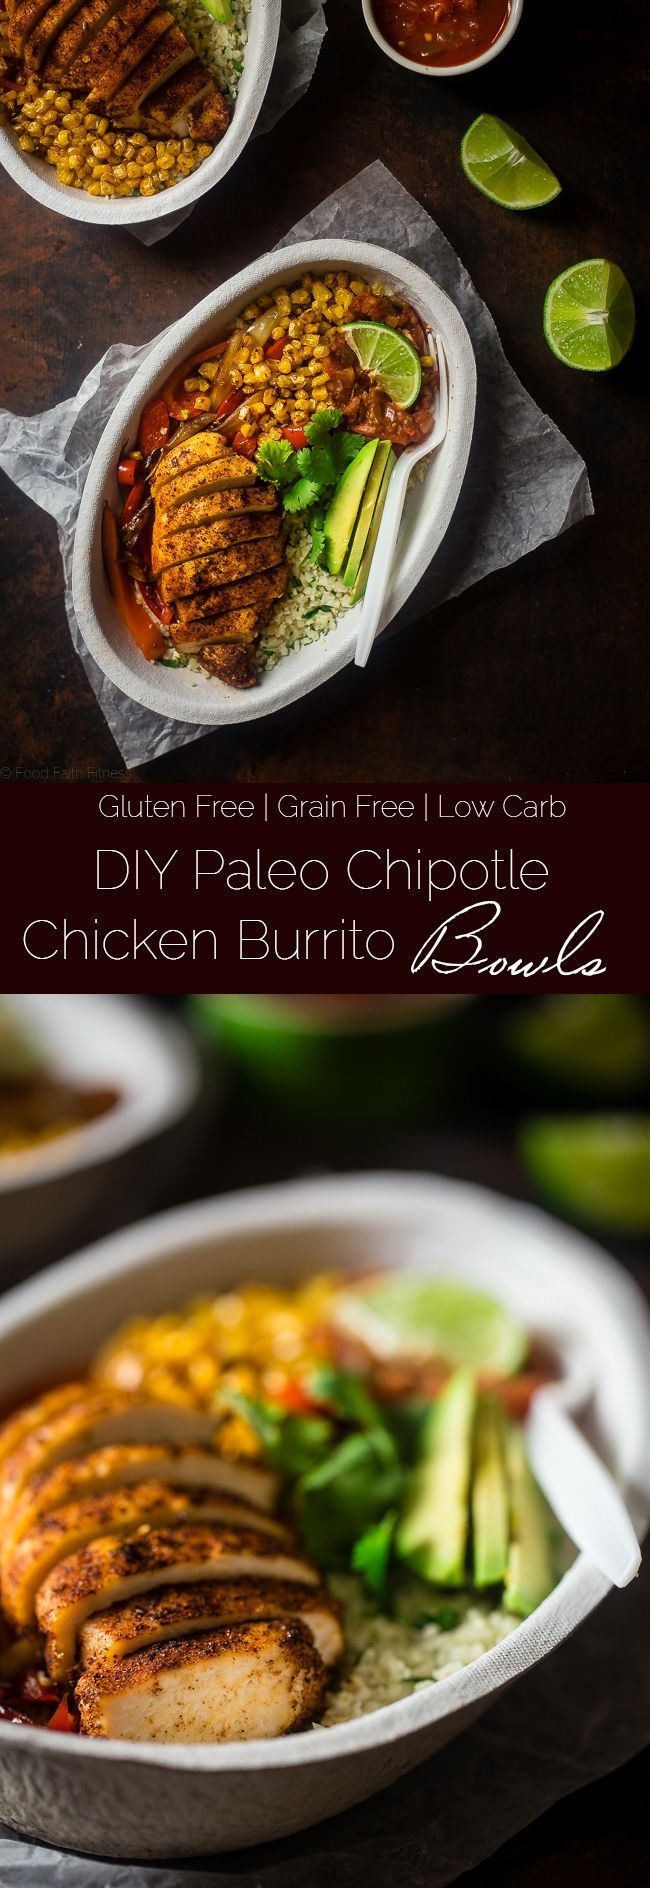 Paleo Chipotle Chicken Burrito Bowls - Make your own healthy, gluten free and paleo-friendly Chipotle Burrito Bowl at home with this quick and easy, 30 minute recipe! It's perfect for busy weeknights and under 450 calories! | http://Foodfaithfitness.com | /FoodFaithFit/